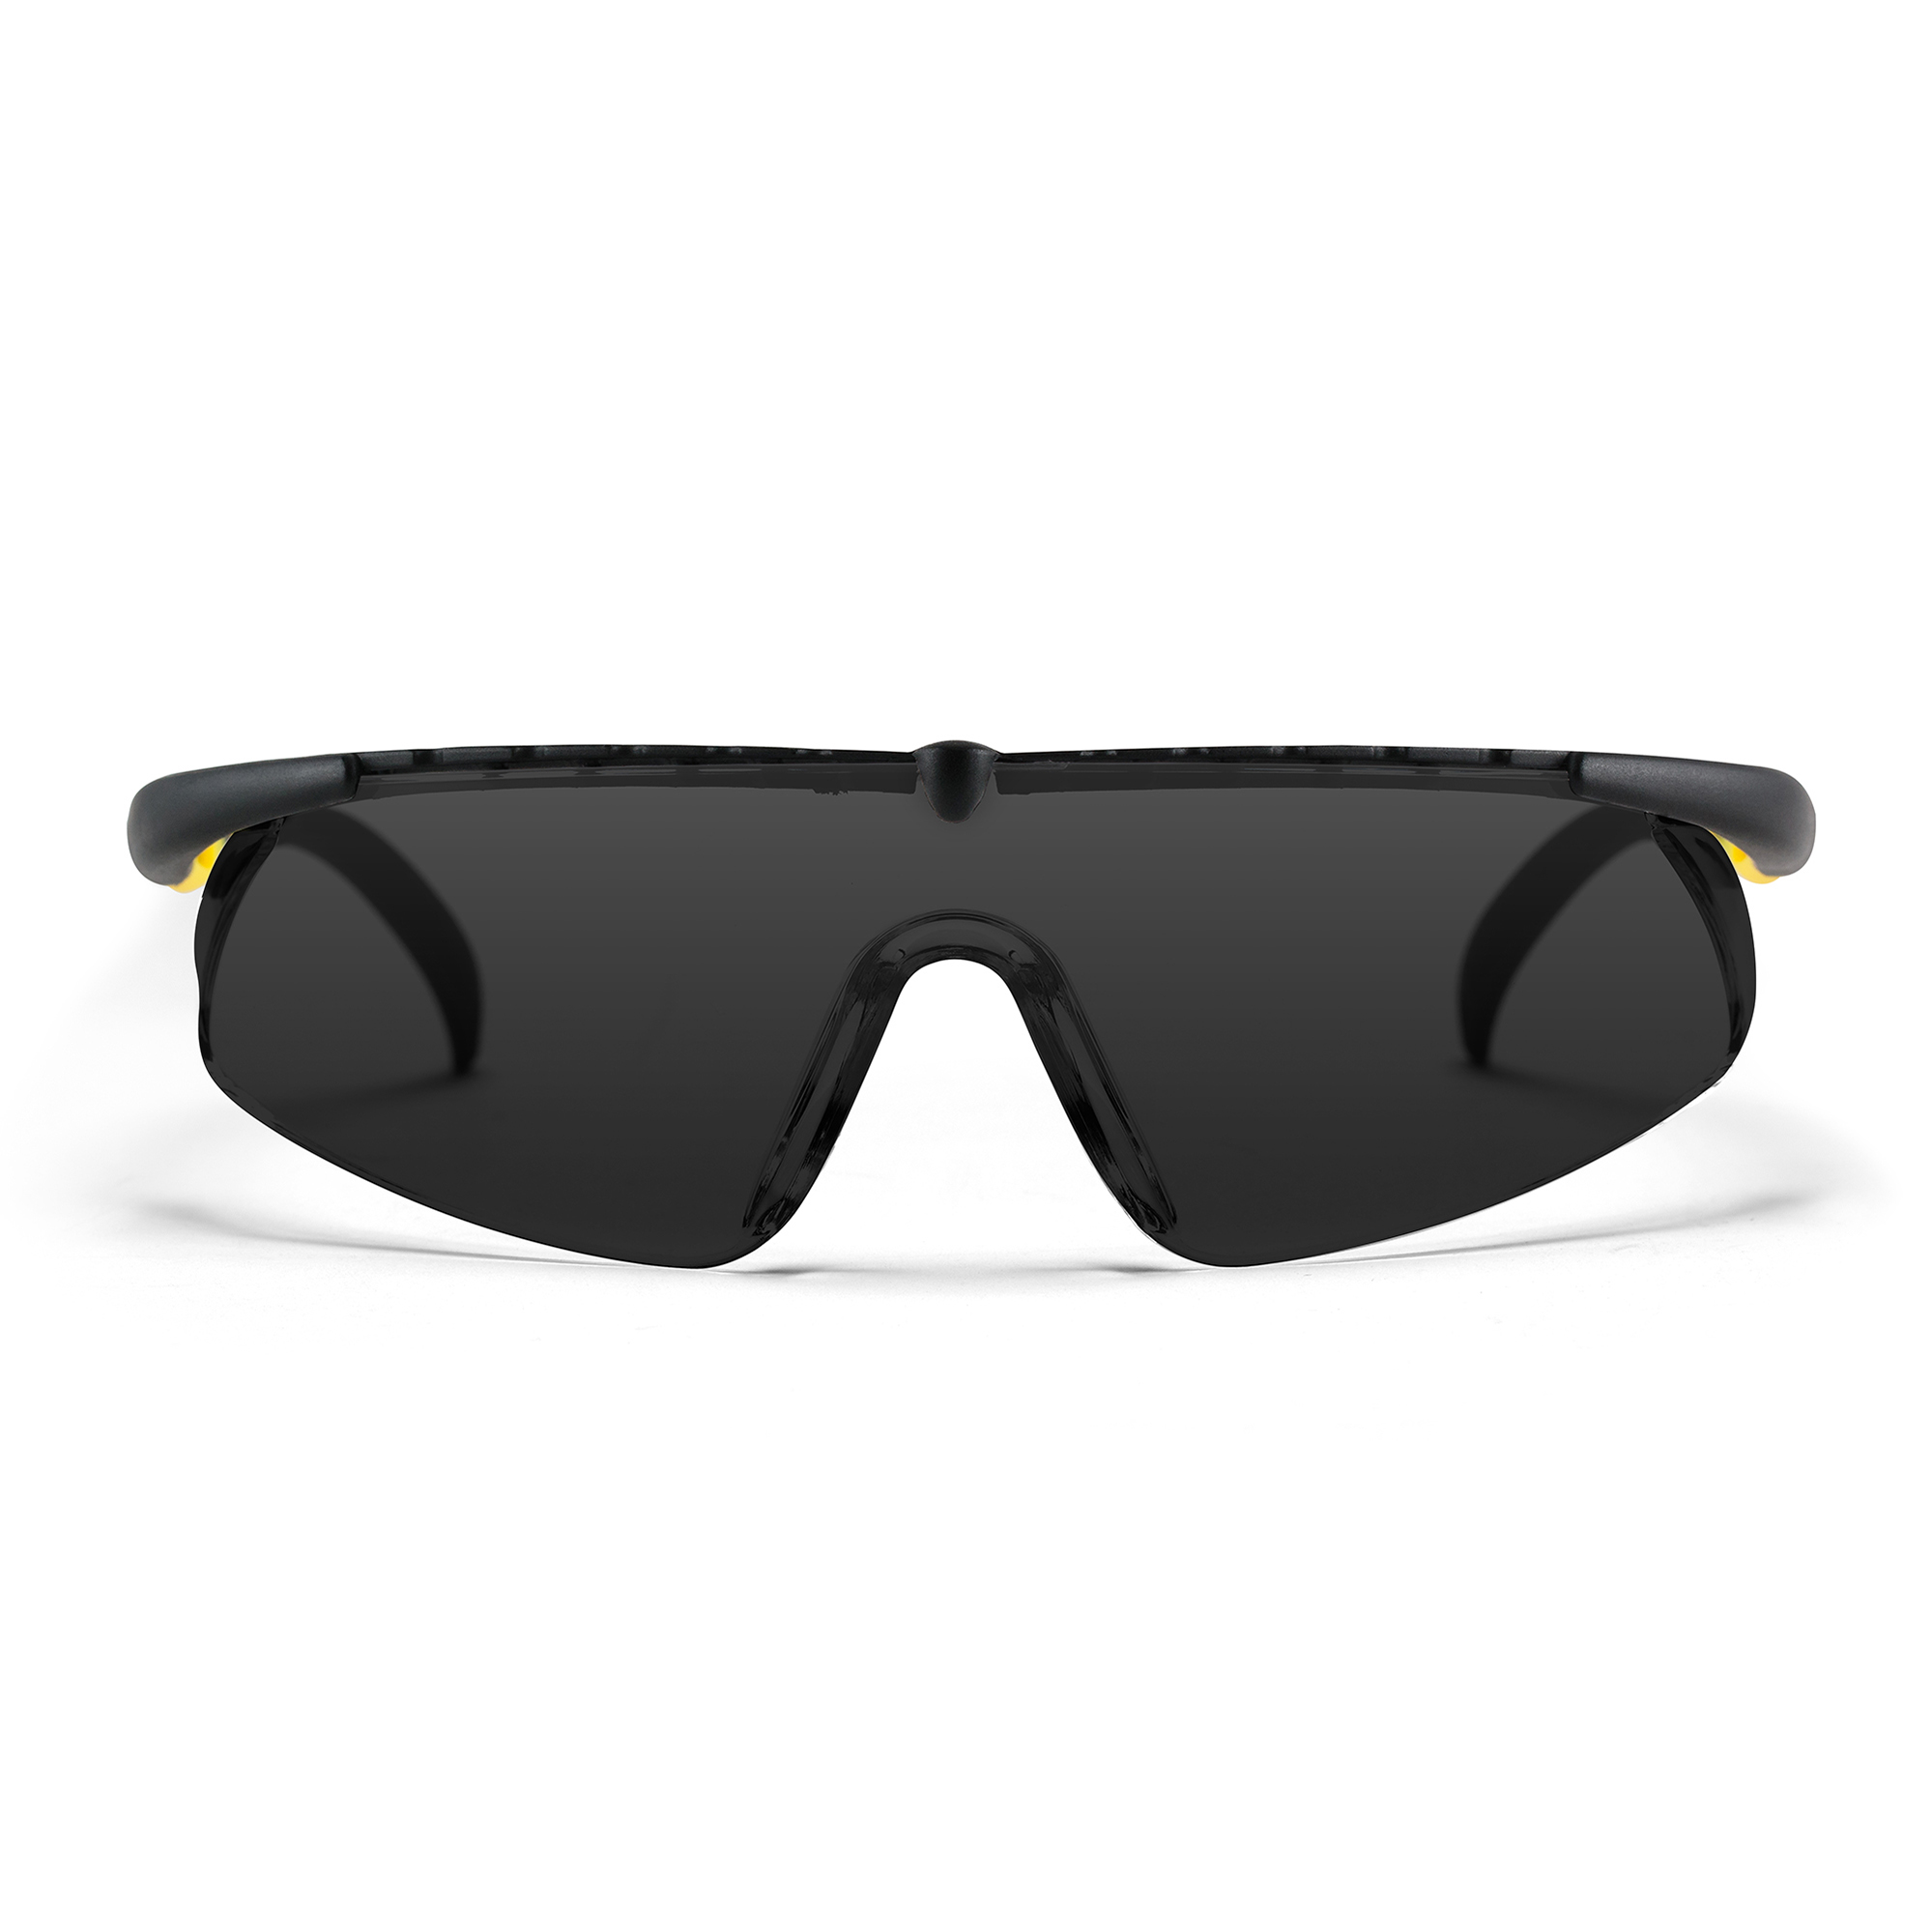 3d0e42cc82 Muzzle Mates ANSI Approved Safety Glasses with Anti Fog  Scratch Resistant  Lenses- Heavy Duty